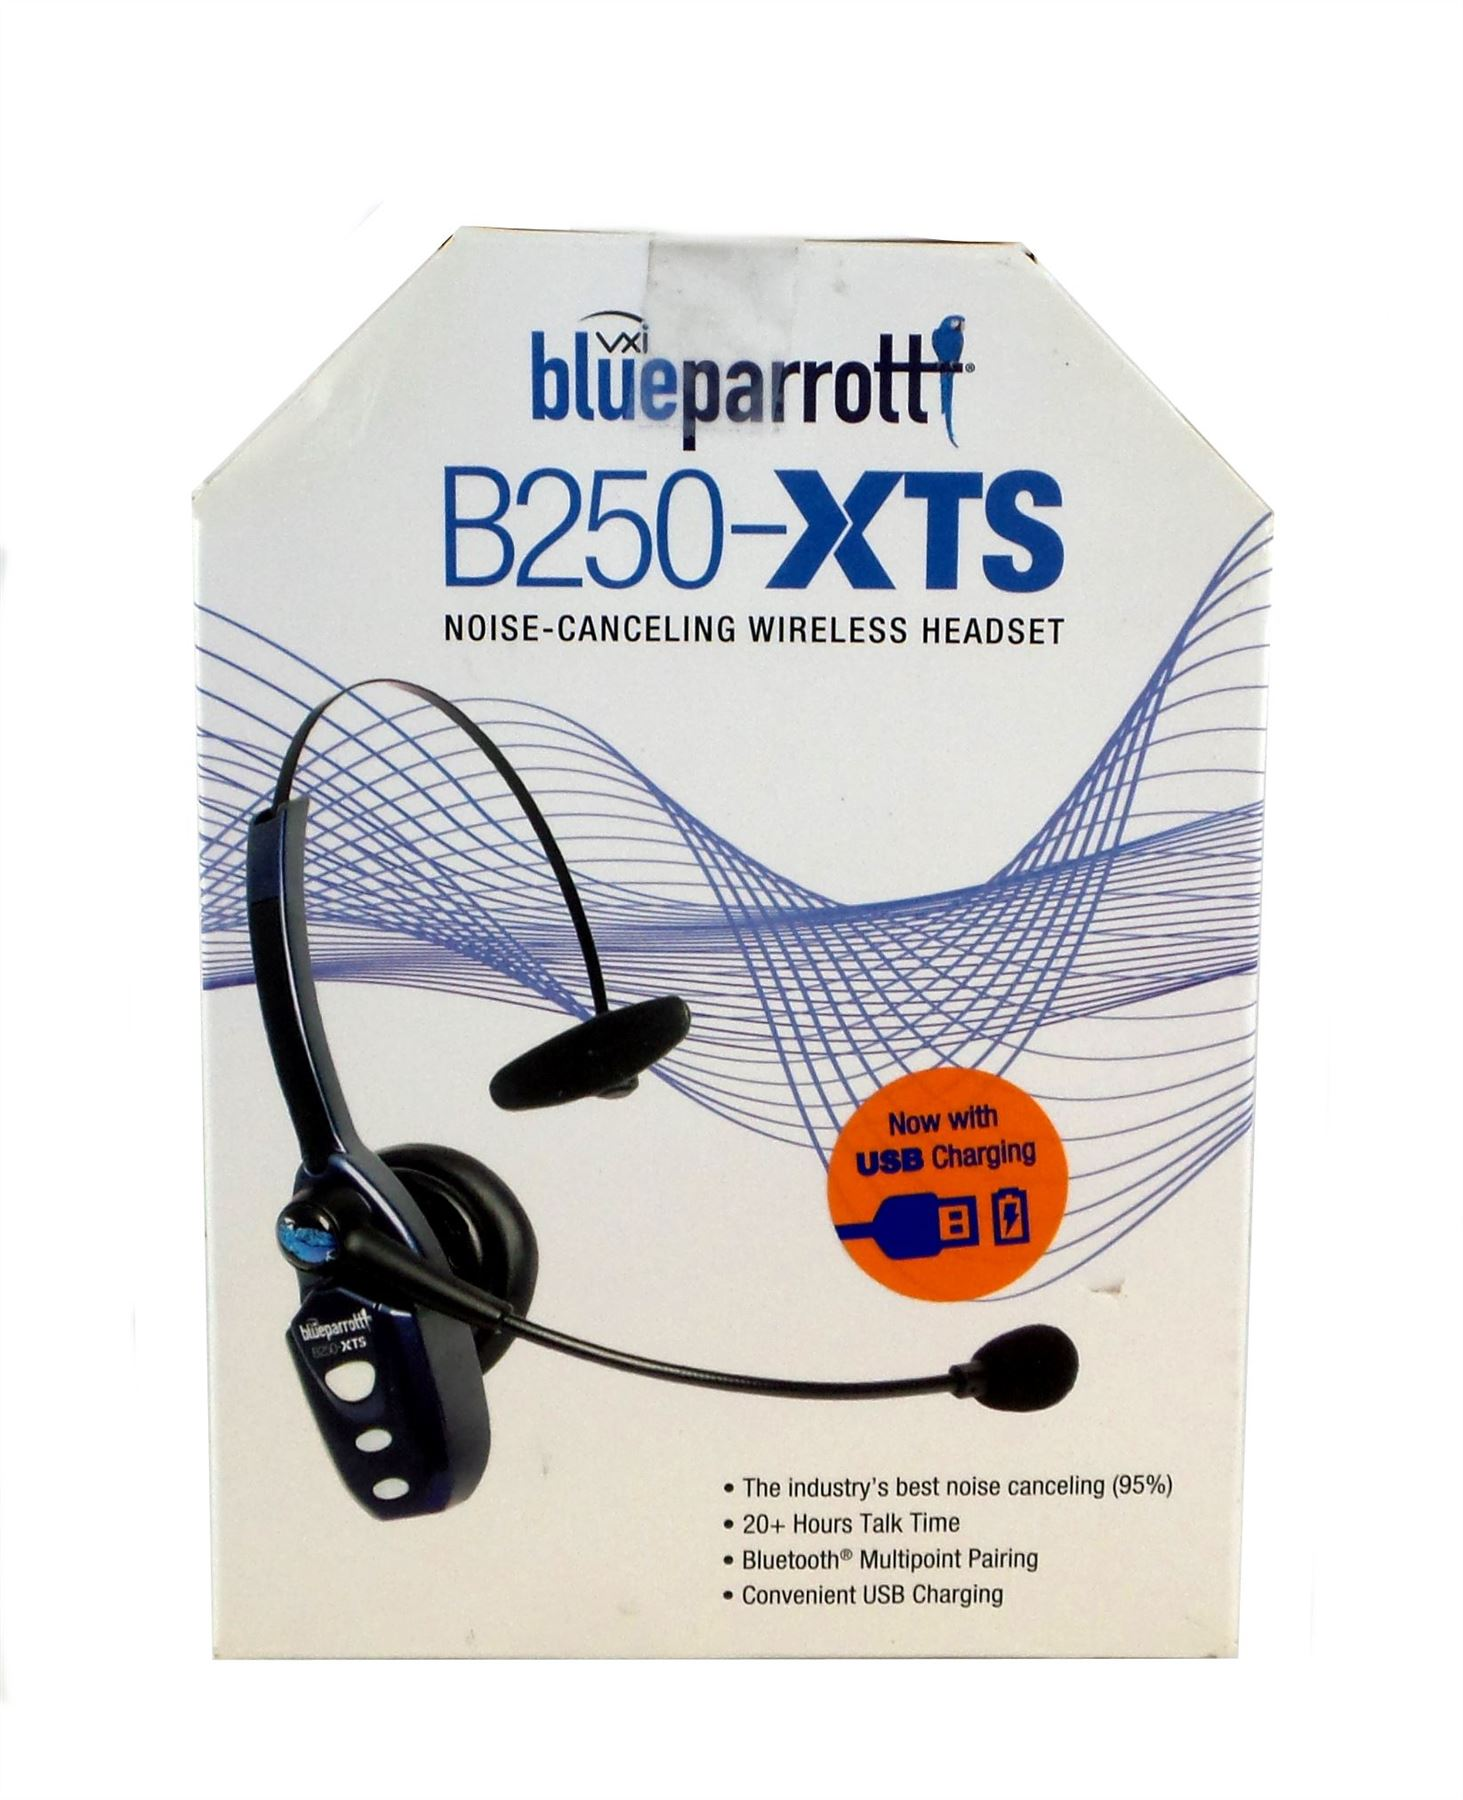 3e4c044f6ac Vxi Blueparrott B250-XTS Bluetooth Wireless Headset with Micro USB Charging  Blue